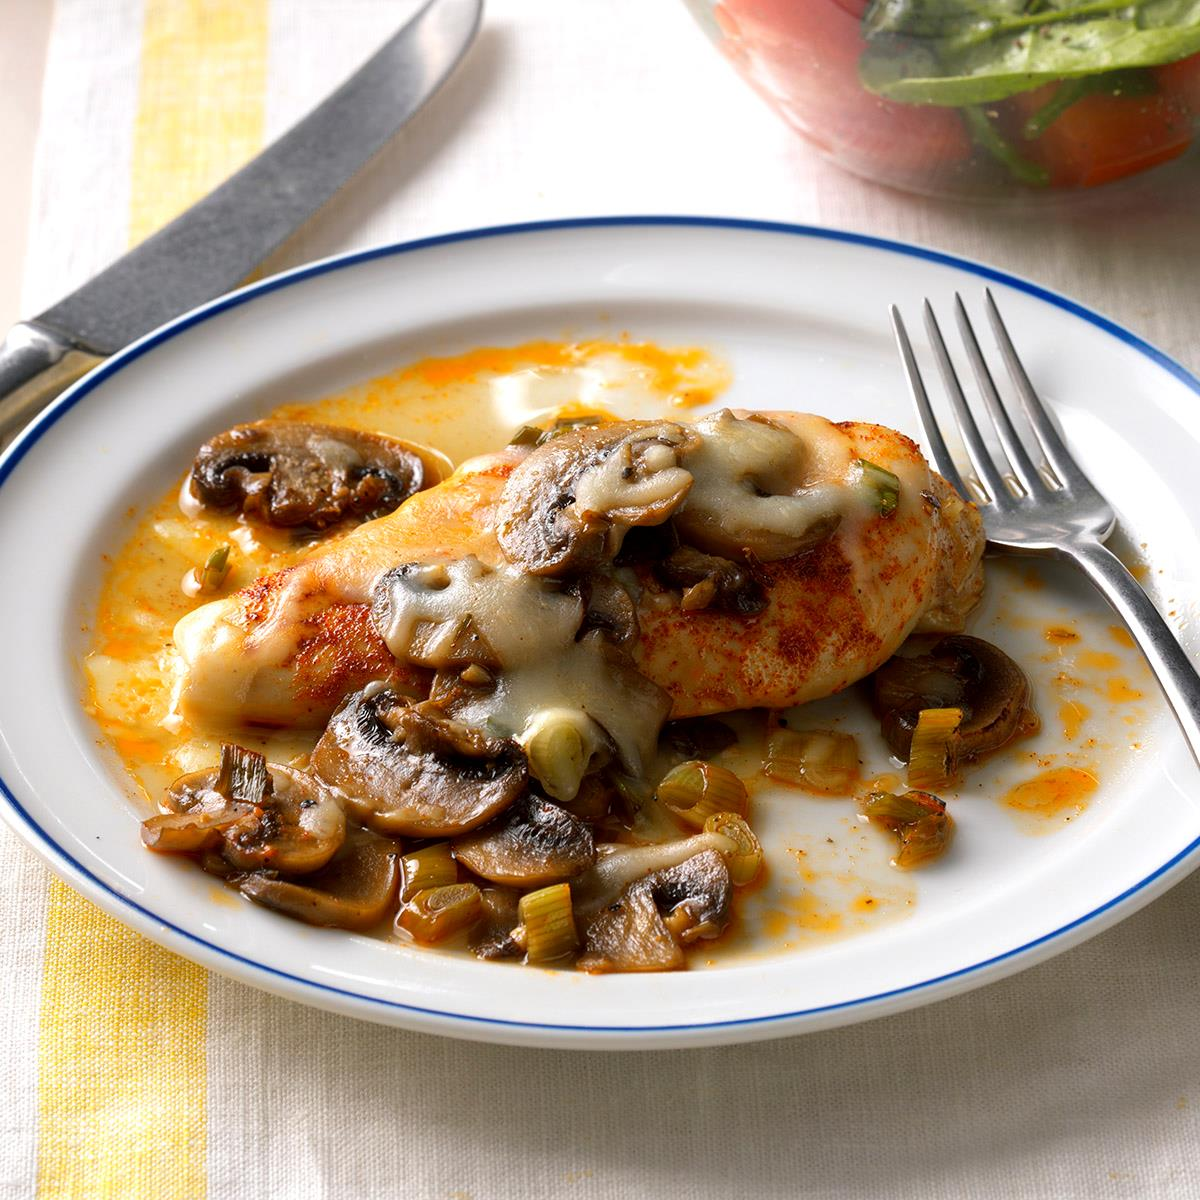 Baked Chicken And Mushrooms Recipe